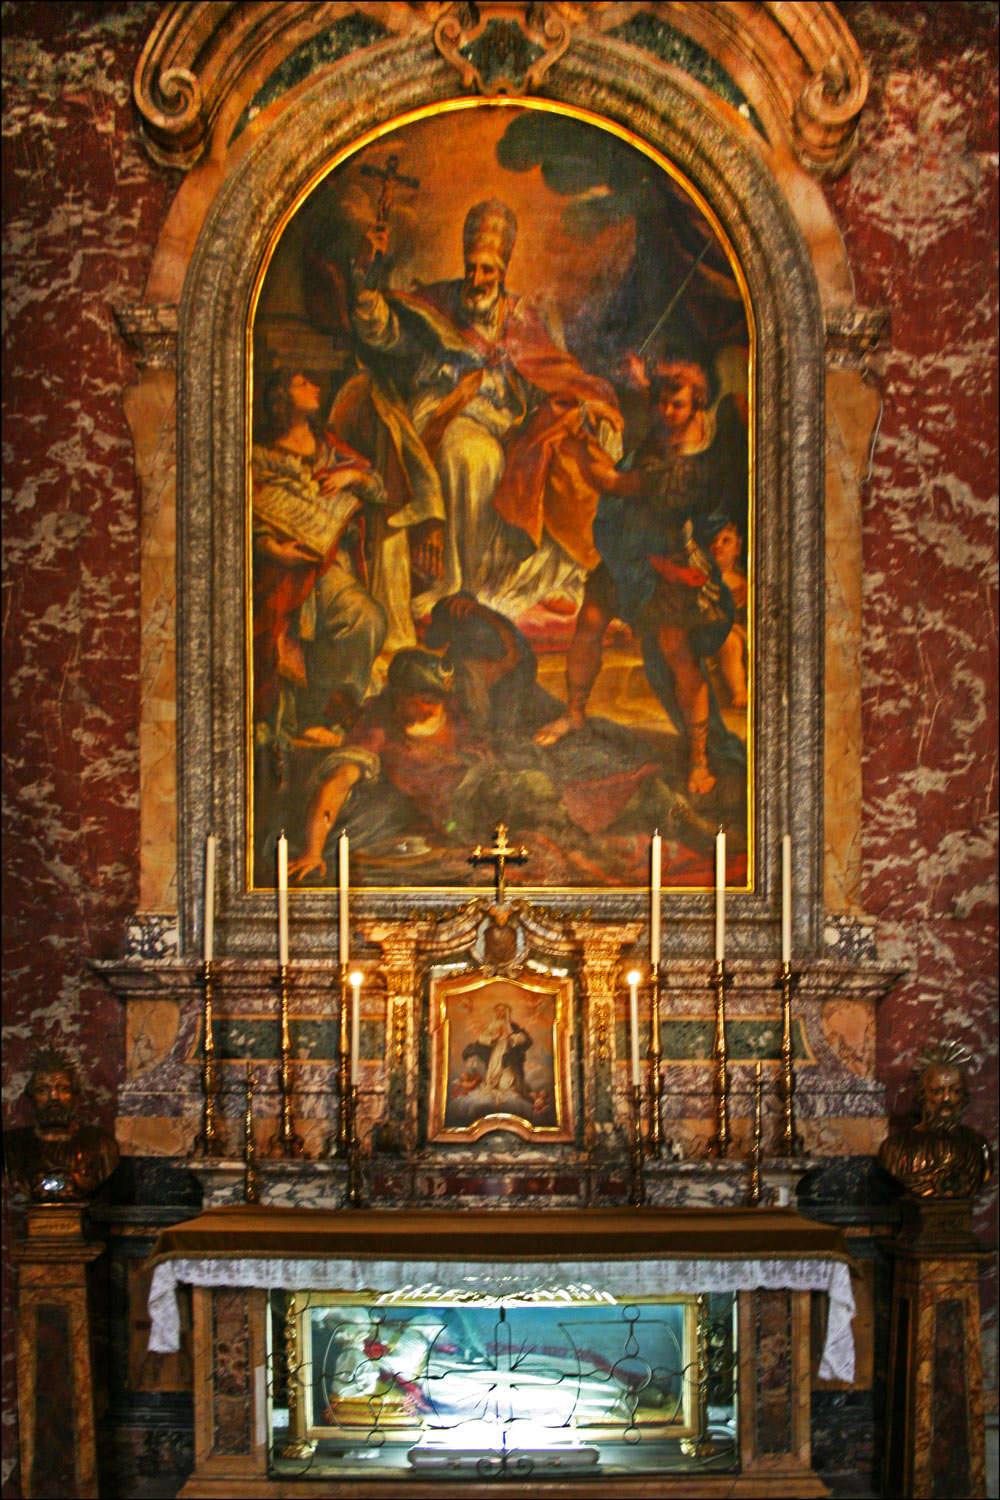 The Chapel of St. Pius V